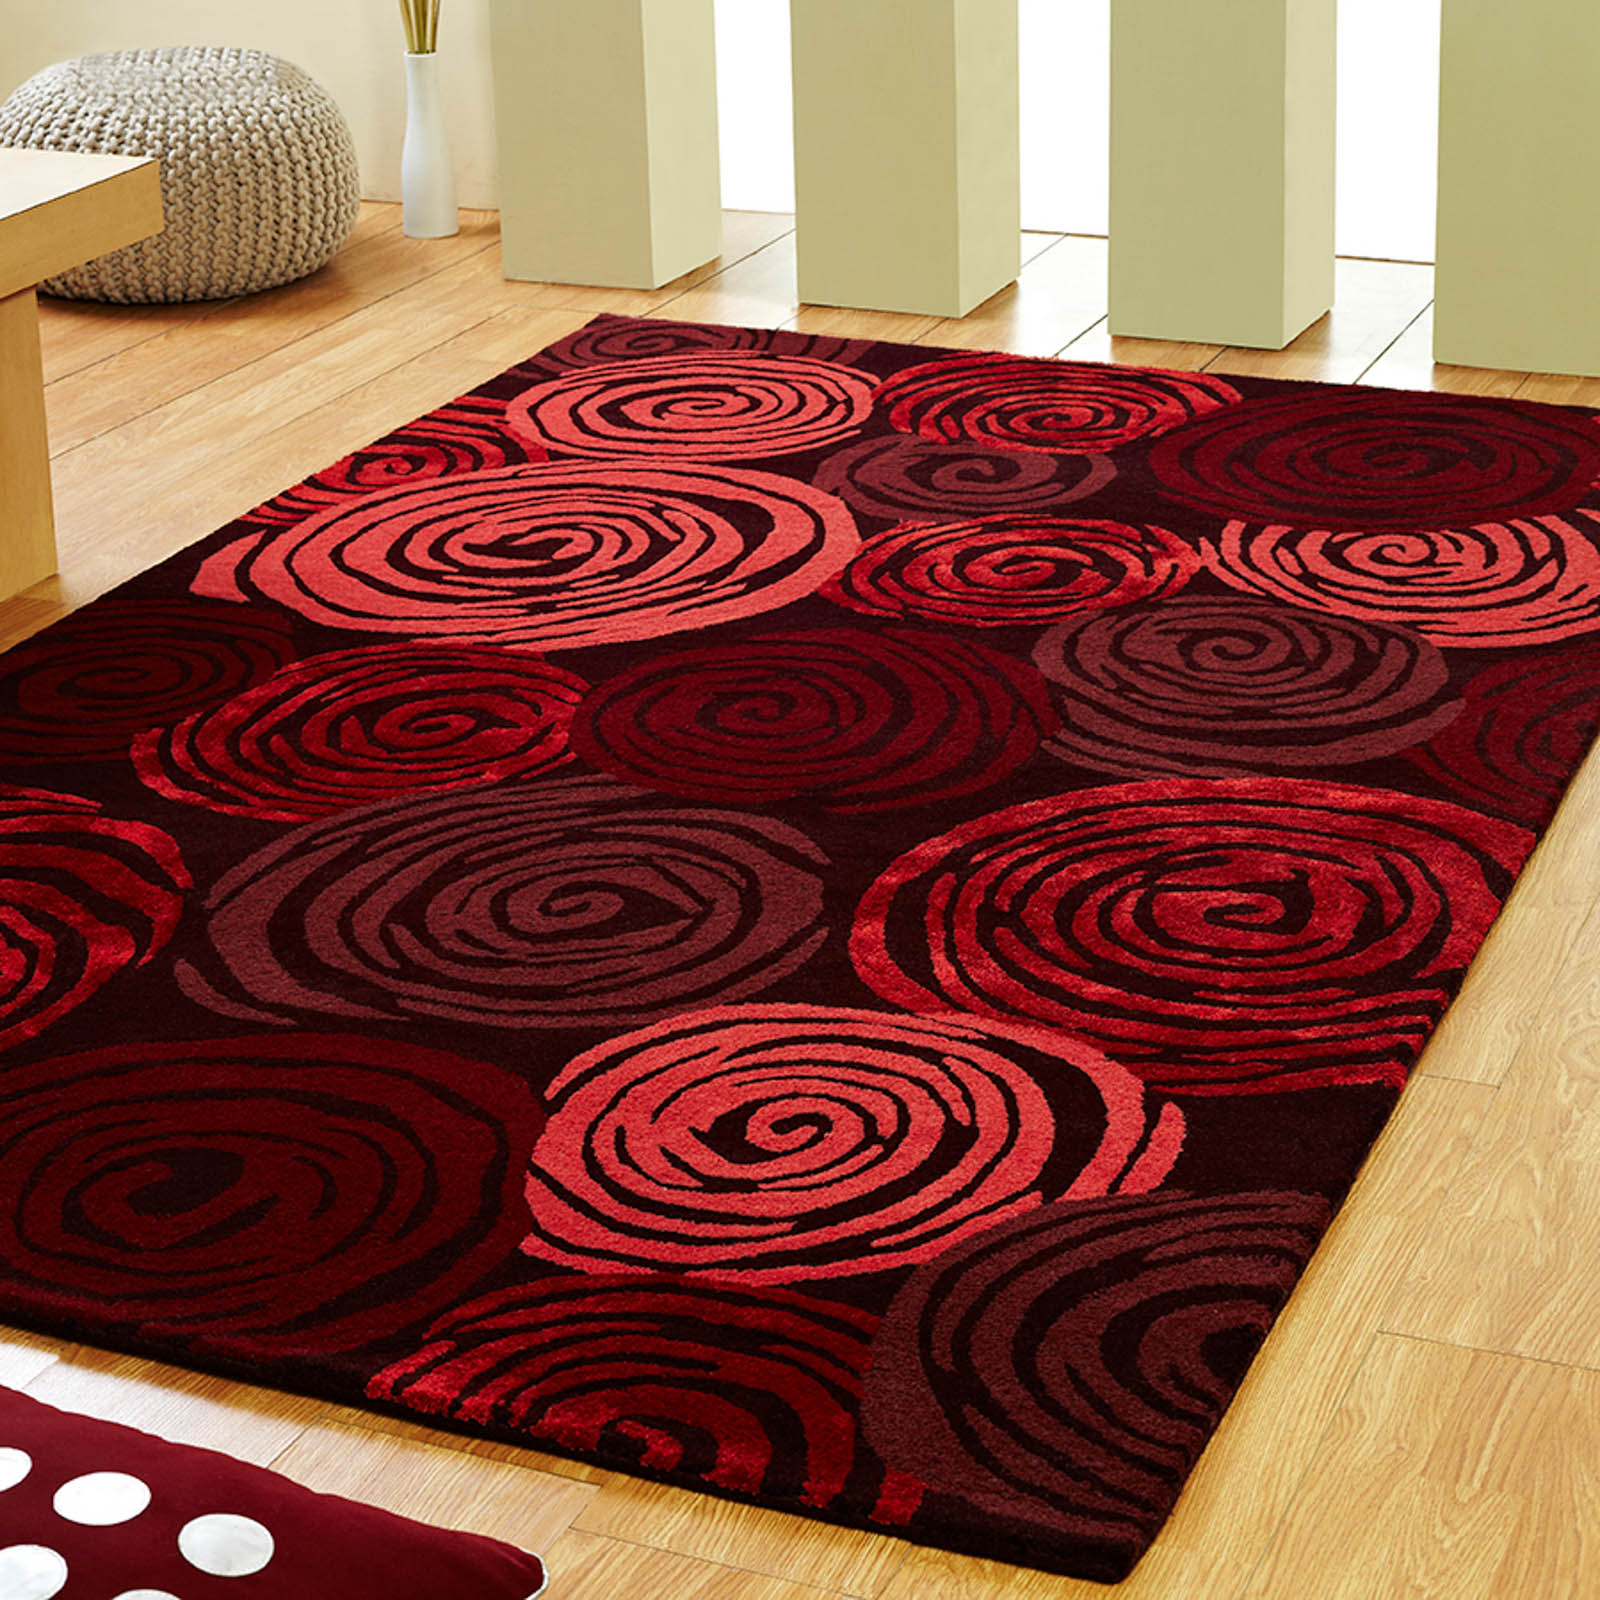 Vibrant Red Rugs For Your Place Goodworksfurniture